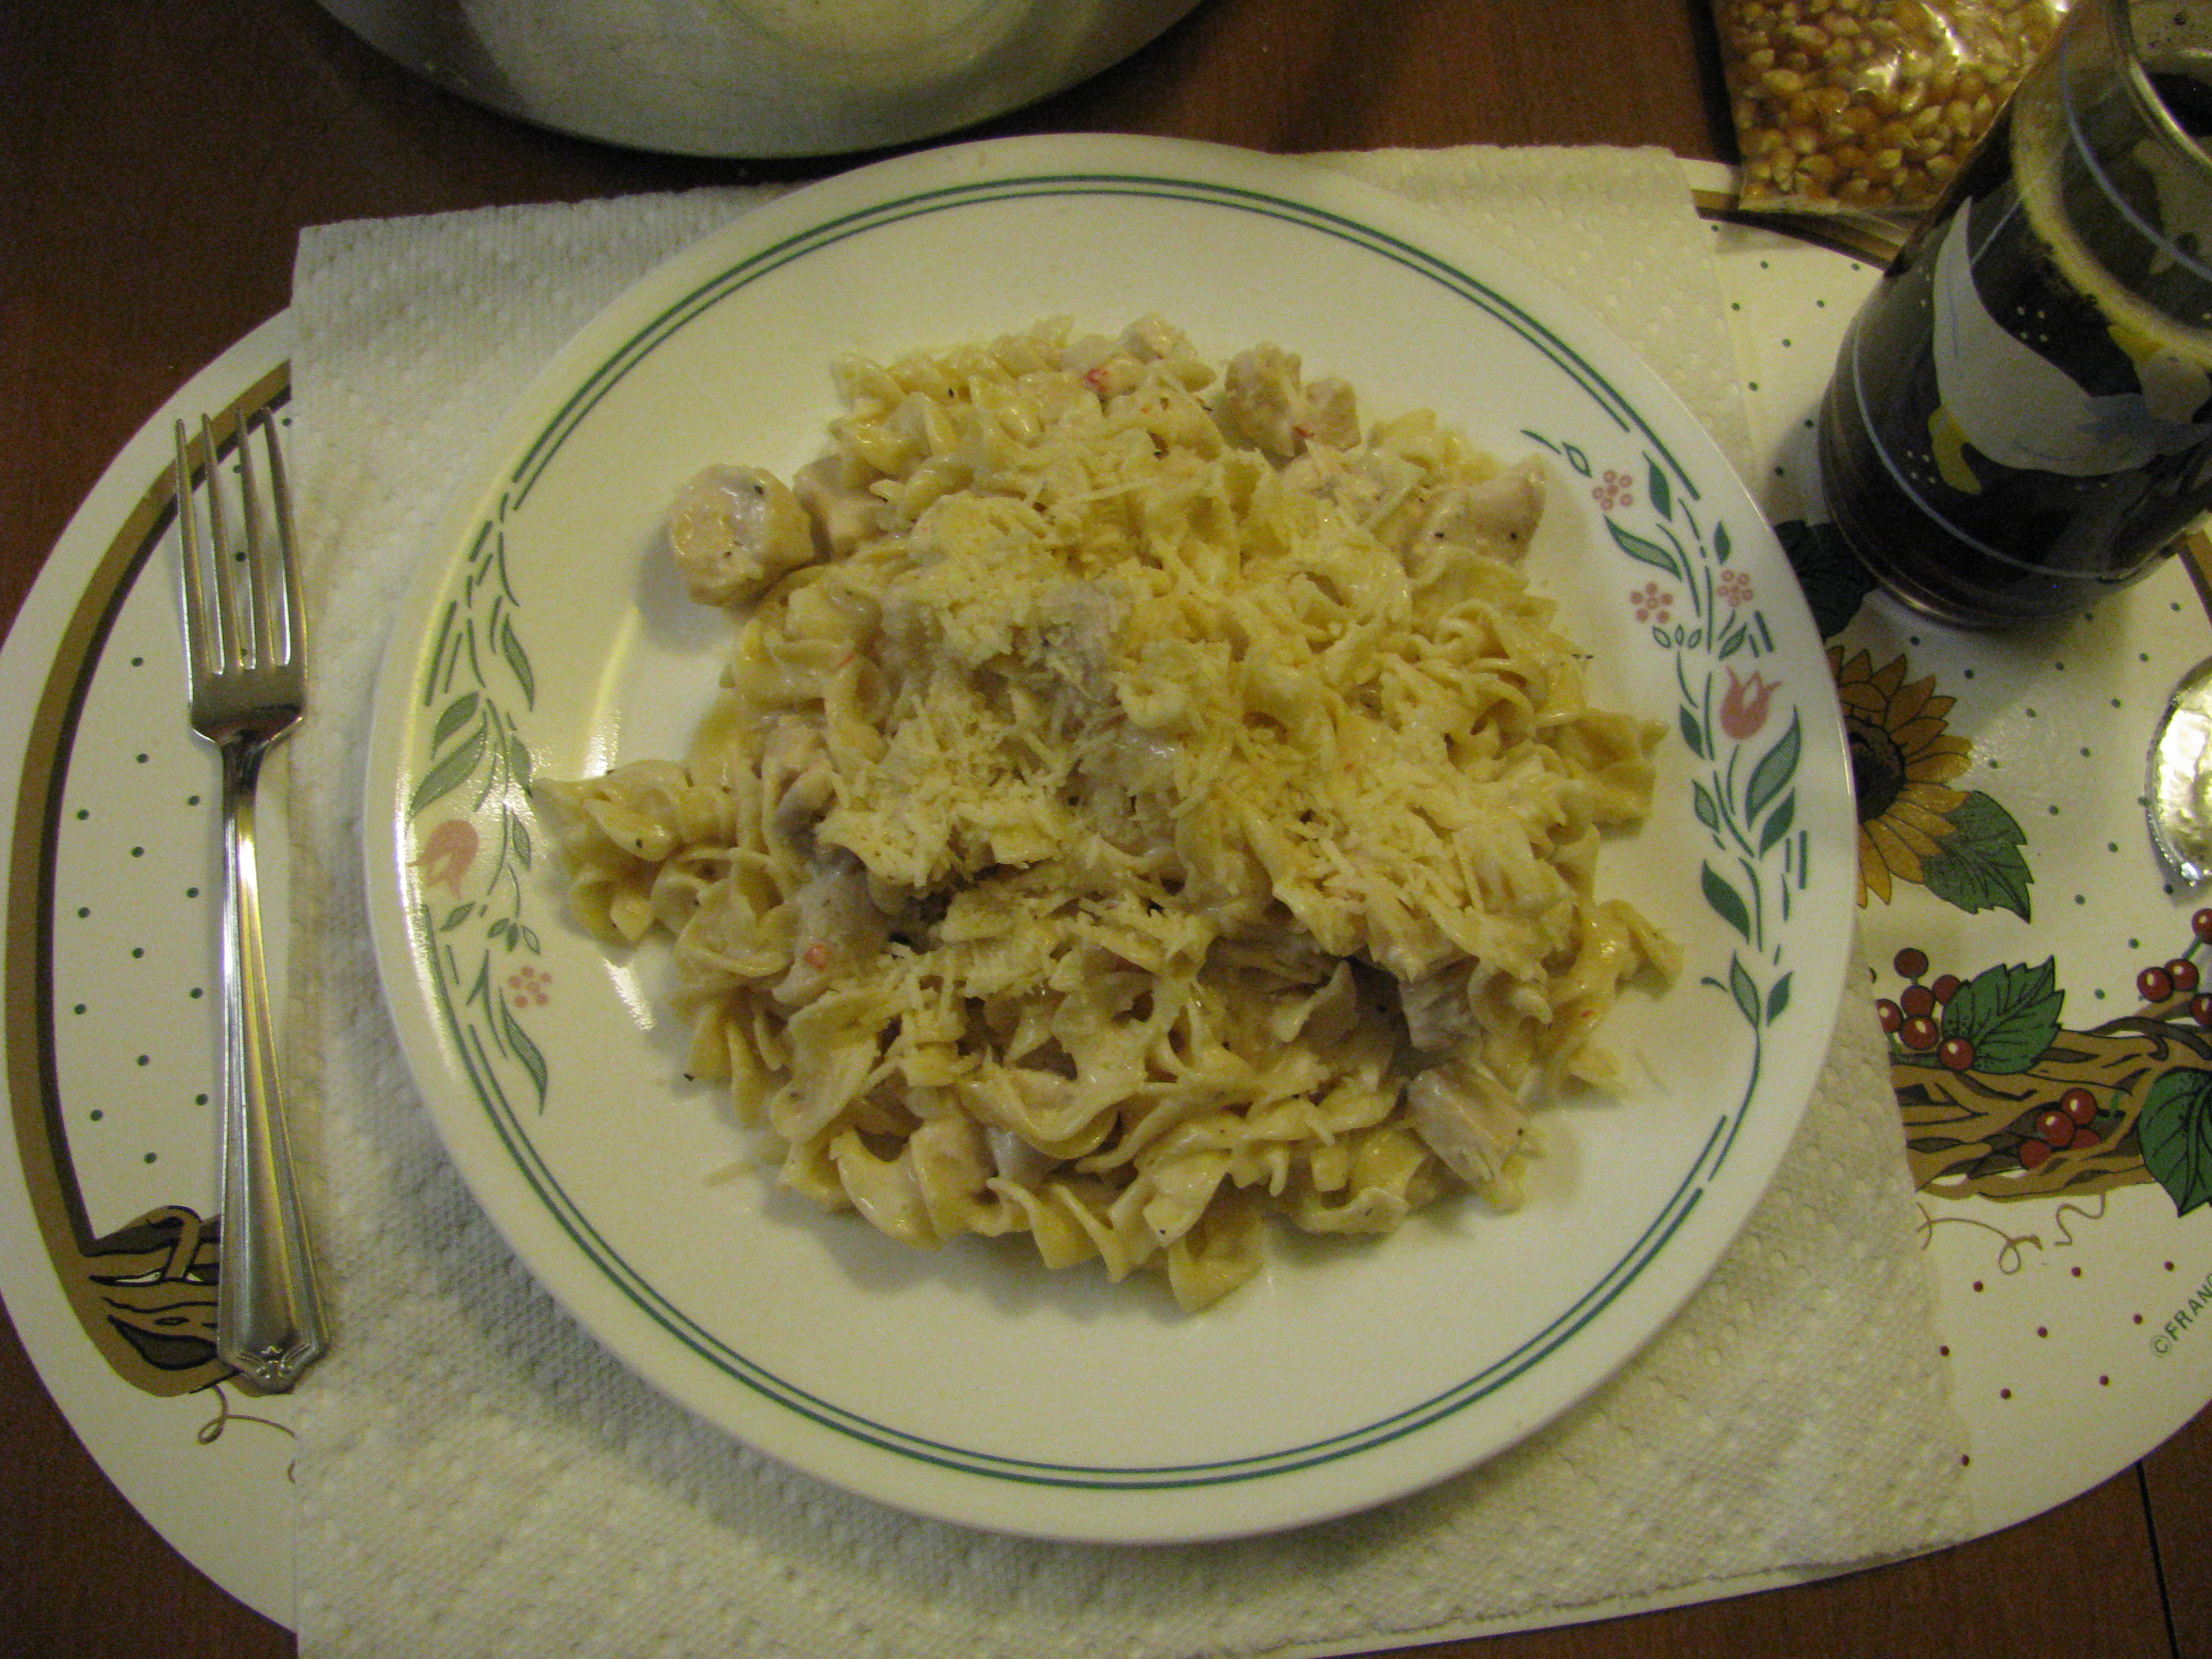 Italian Chicken and Noodles